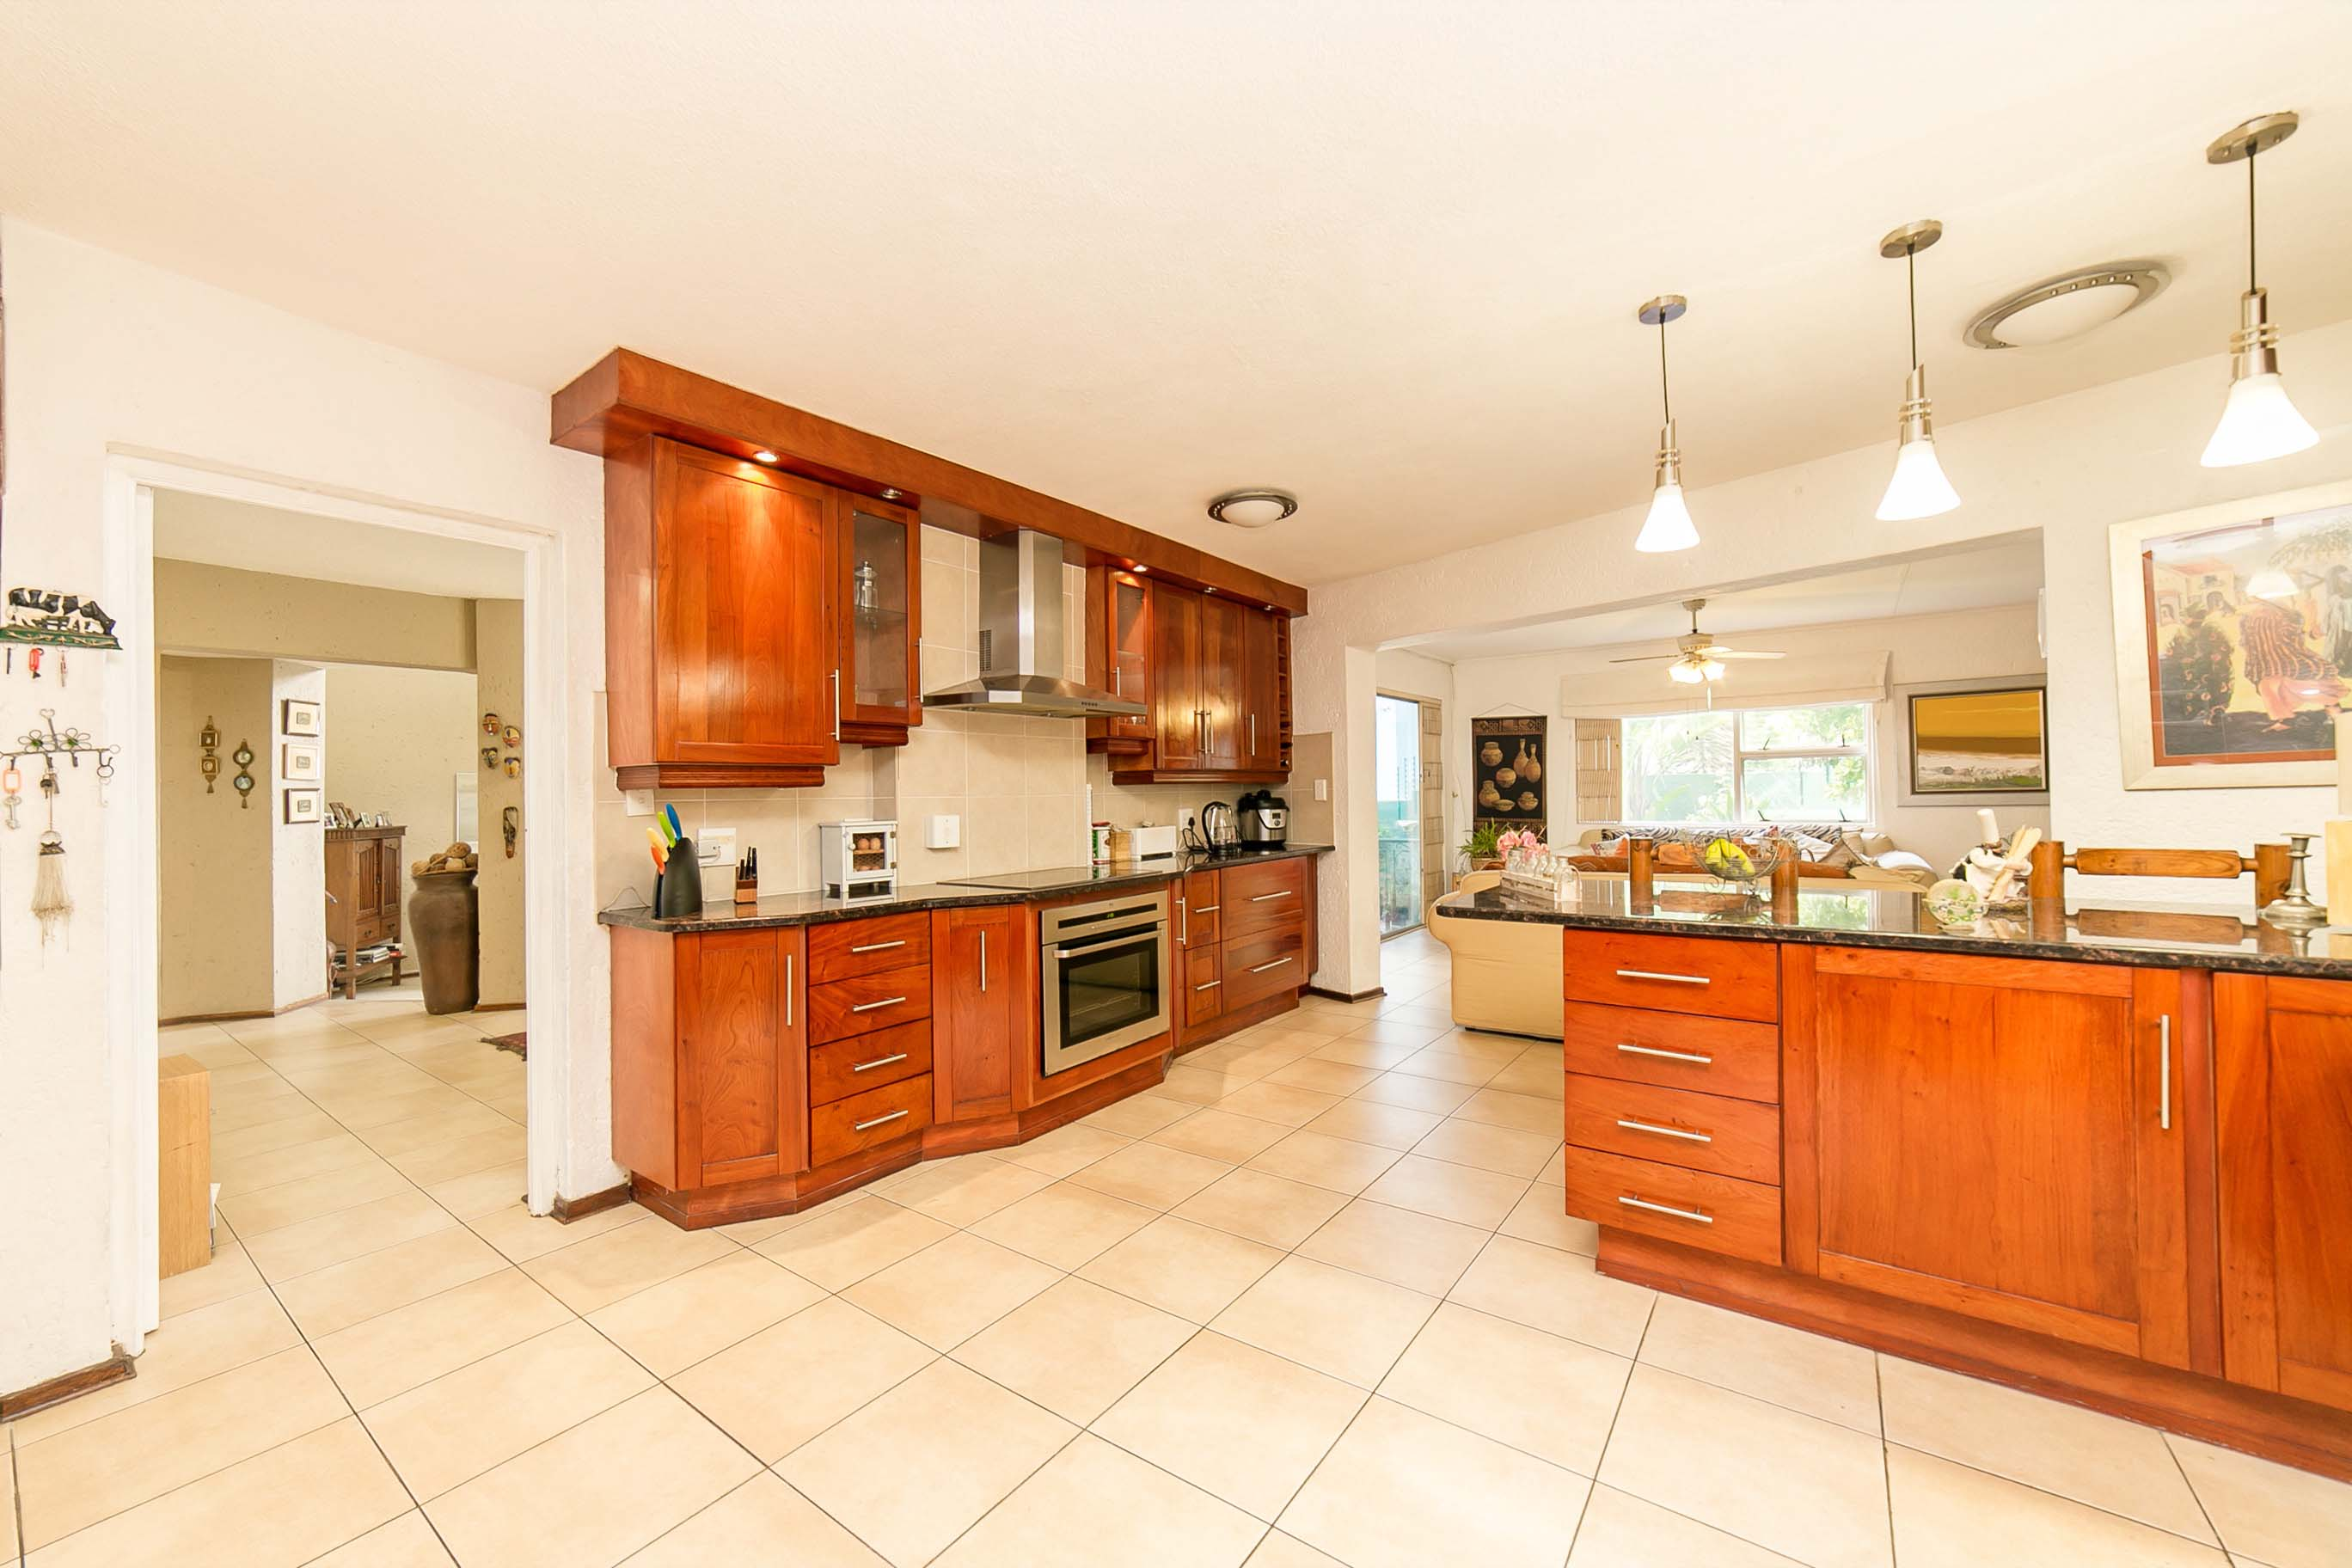 4 Bedroom House for sale in Lonehill ENT0082001 : photo#10